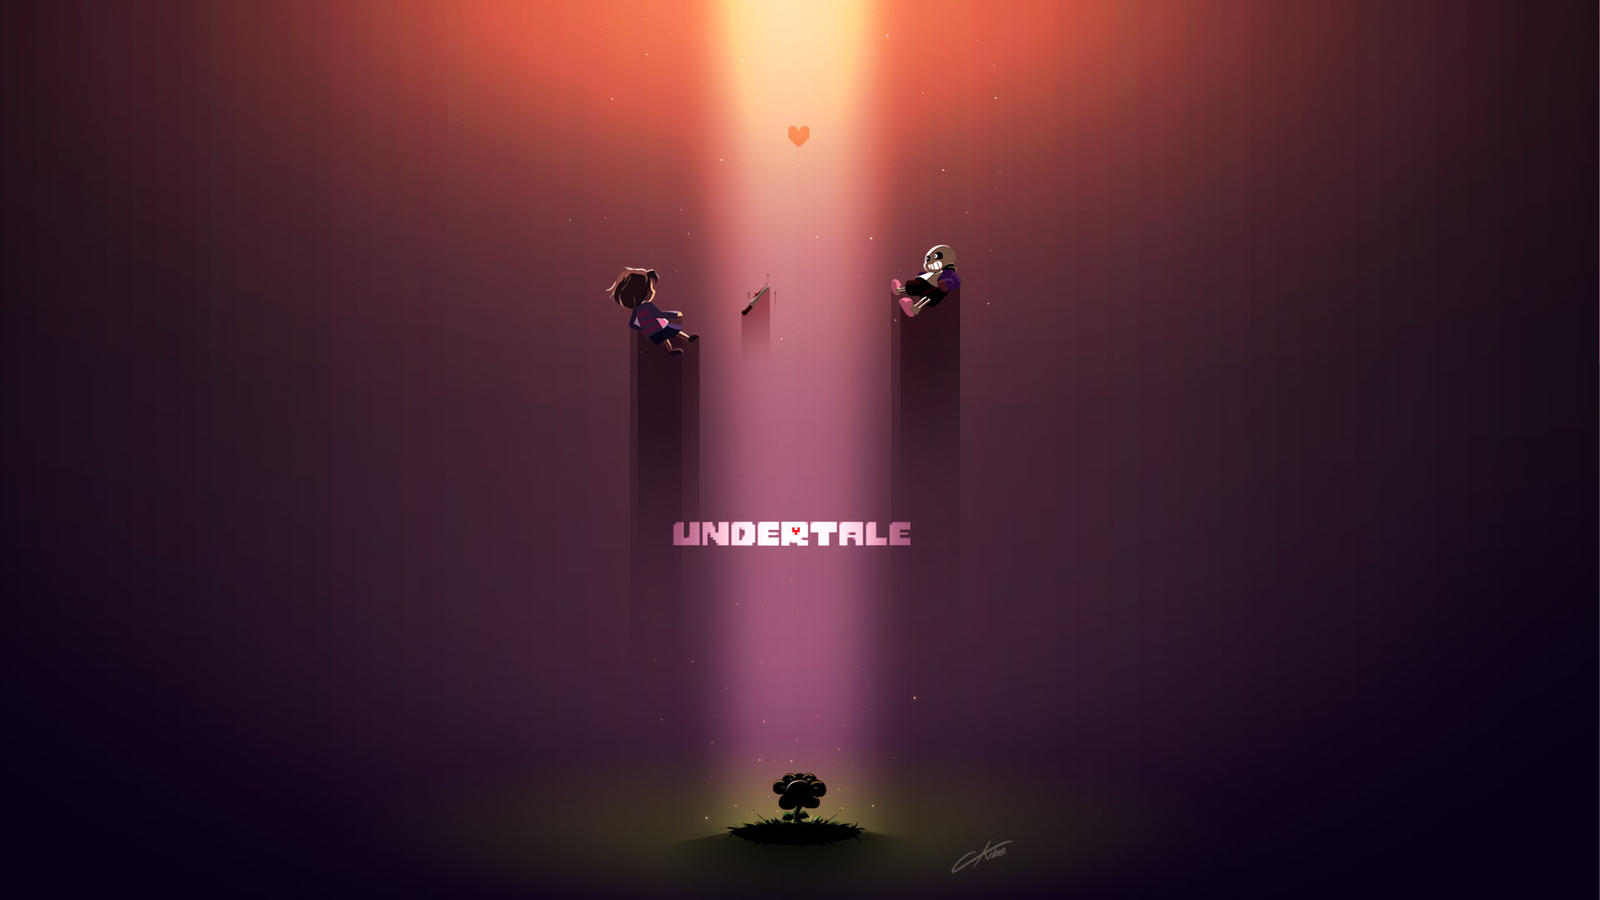 us posters